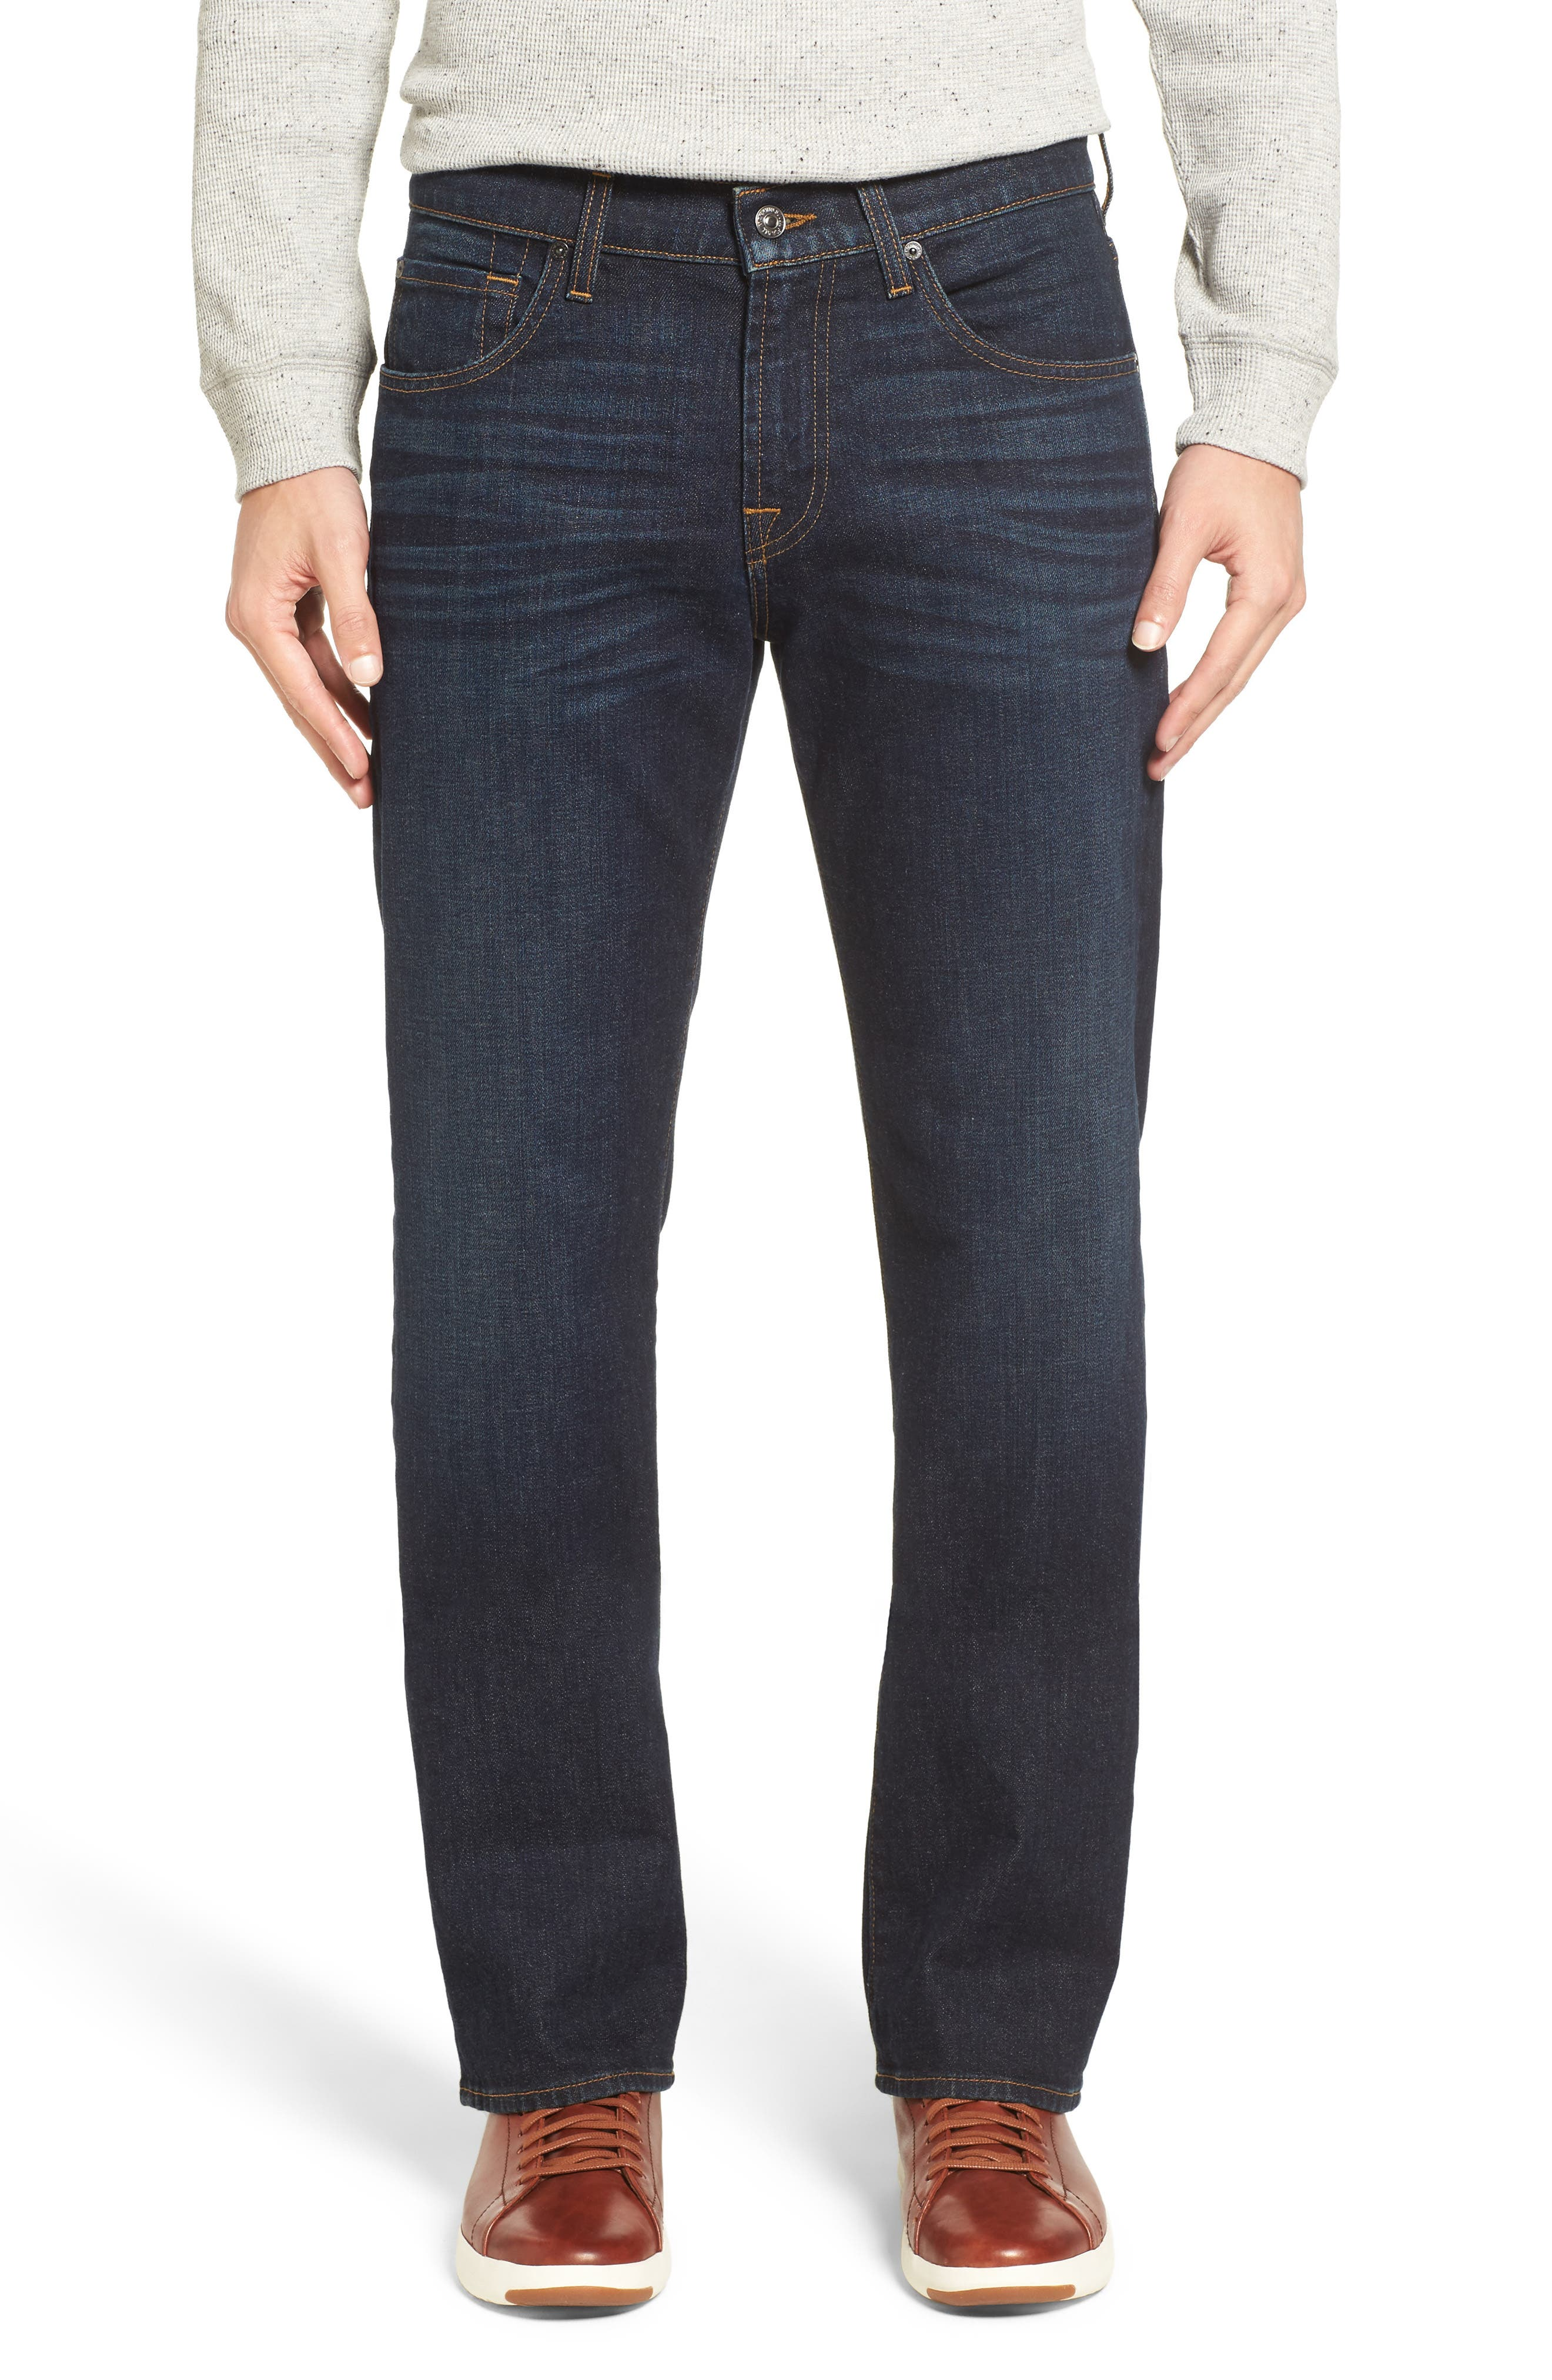 Austyn Relaxed Fit Jeans,                             Main thumbnail 1, color,                             Pike